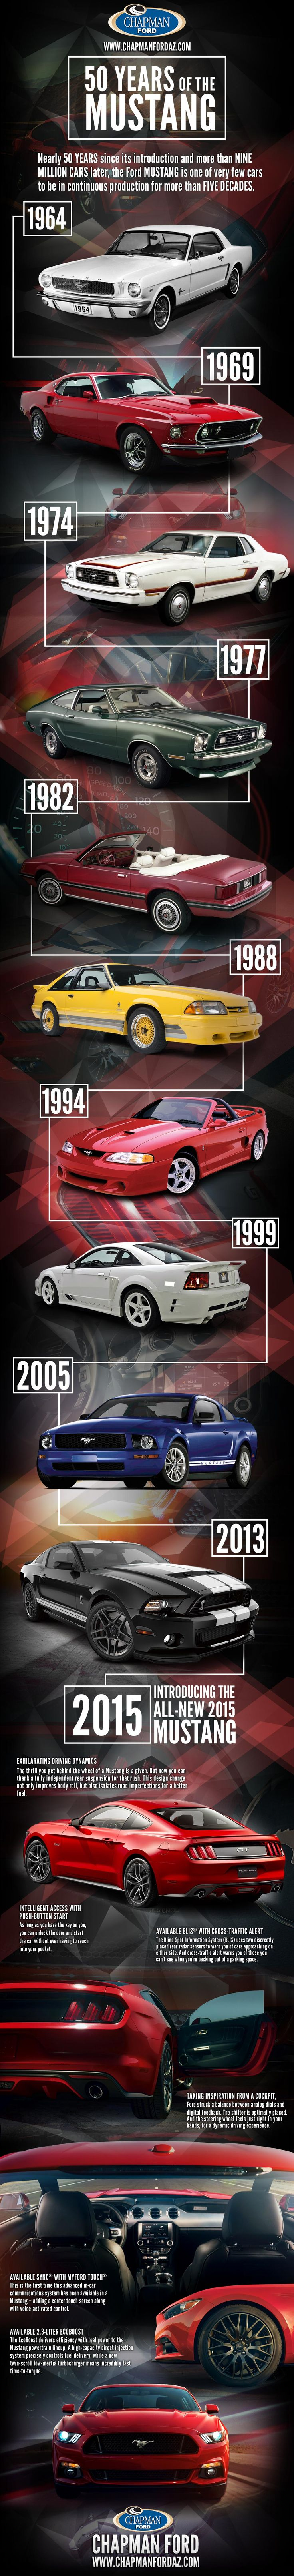 50 Years of the Ford Mustang. #Infographic #WhiteMarshFord ps http://www.amazon.com/gp/product/B00RZ1TKYE